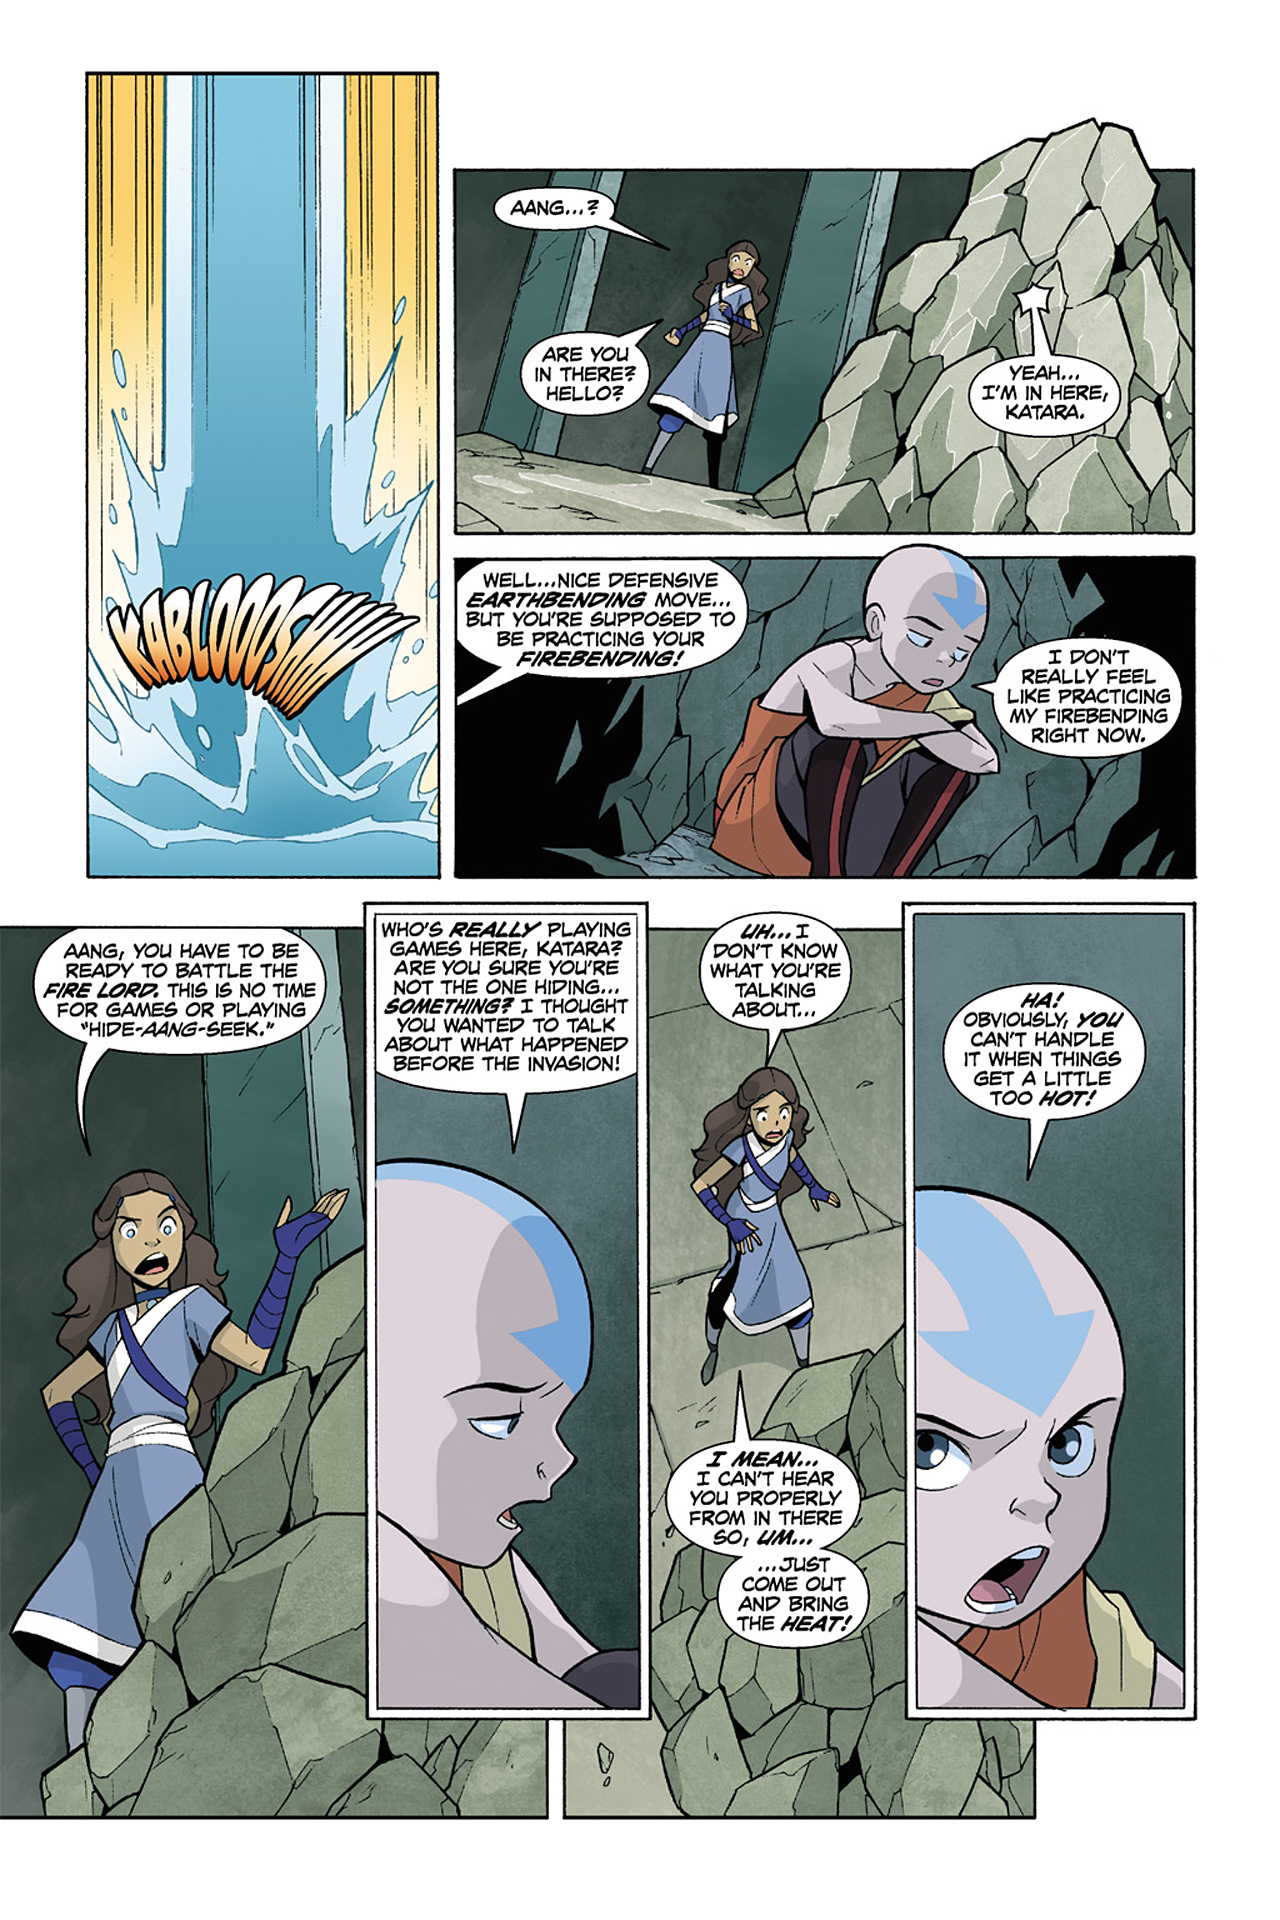 Nickelodeon Avatar: The Last Airbender - The Lost Adventures chap full pic 193